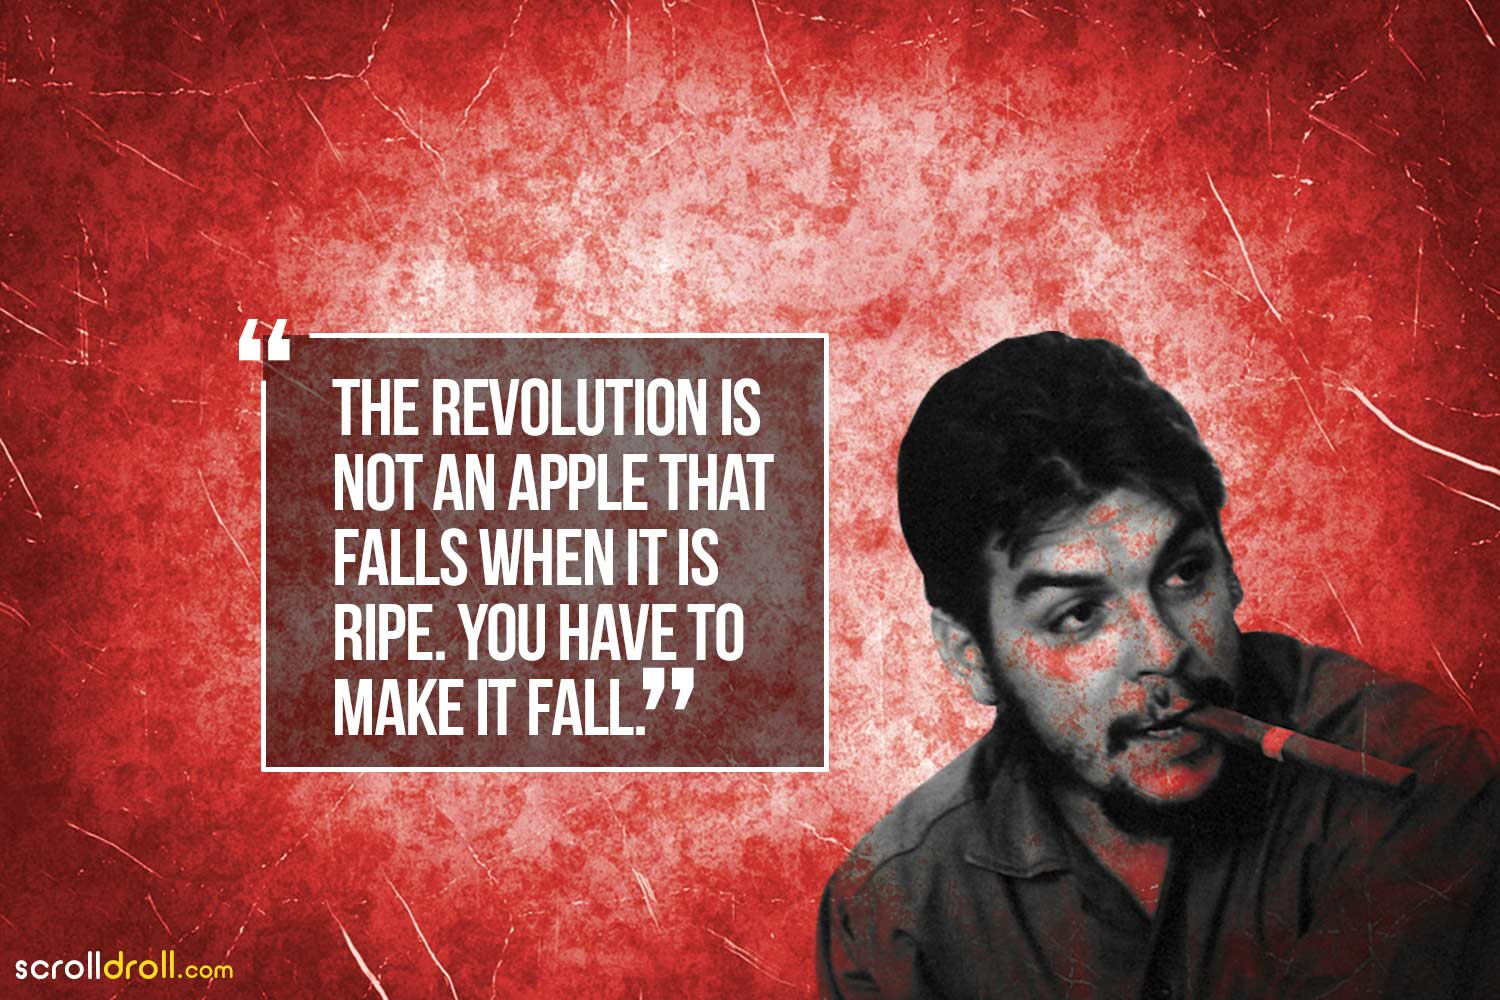 the revolutions not an apple that falls when it is ripe. you have to make it all-che guevara